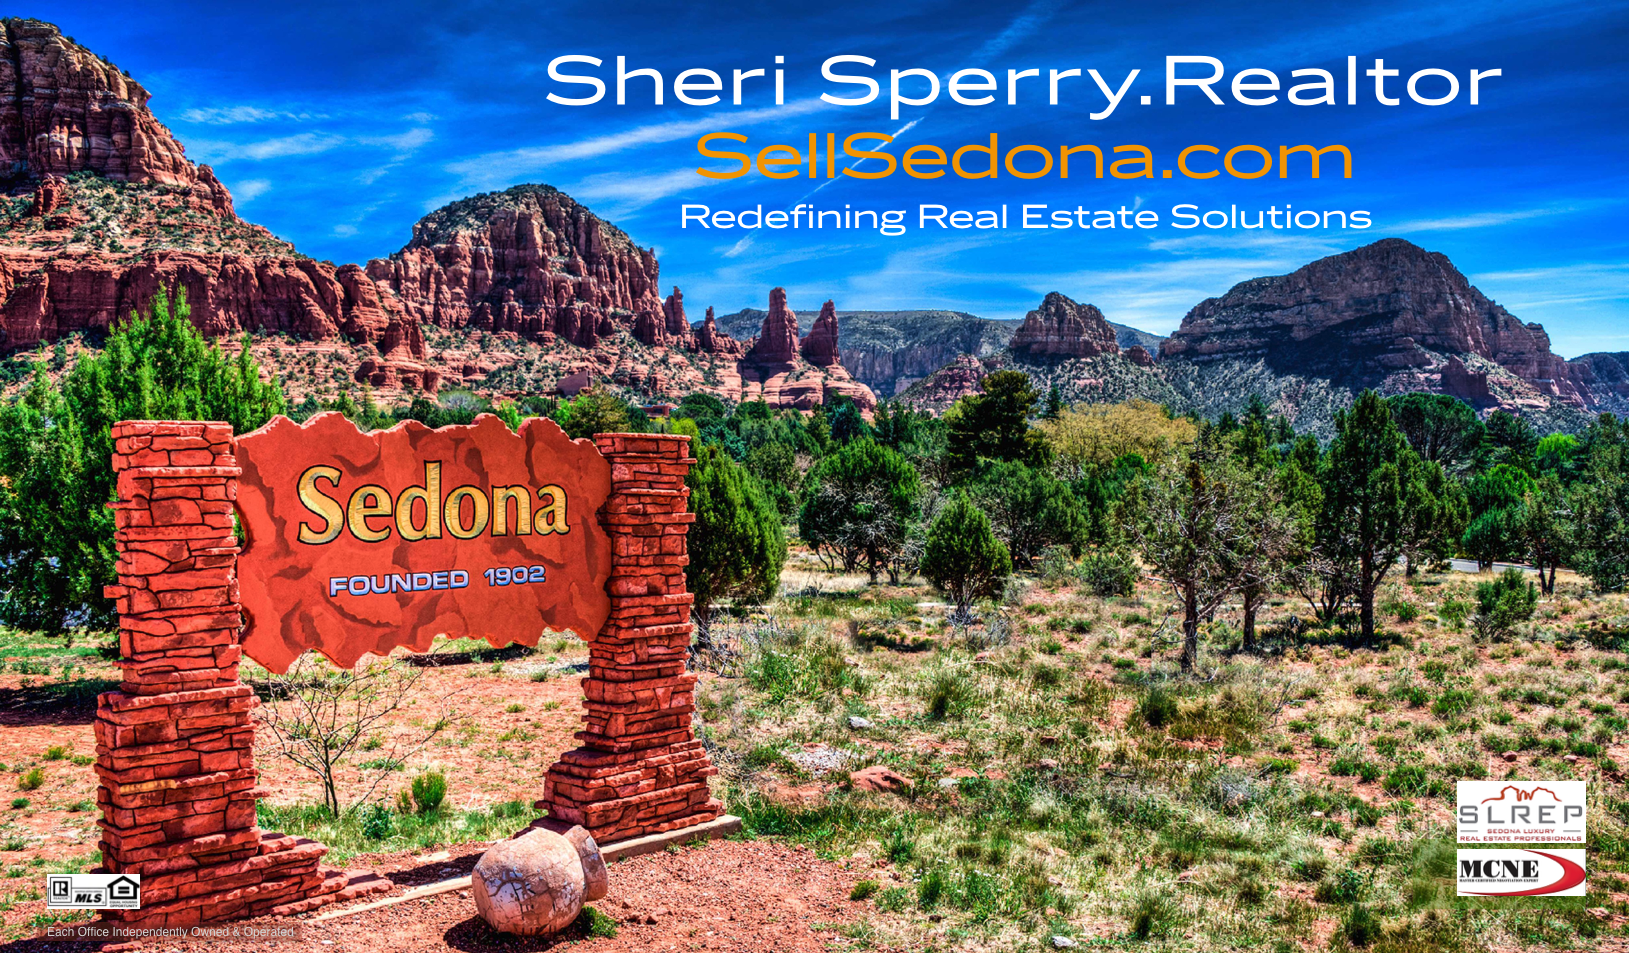 Sheri Sperry ReMax Sedona Realtor Business Card